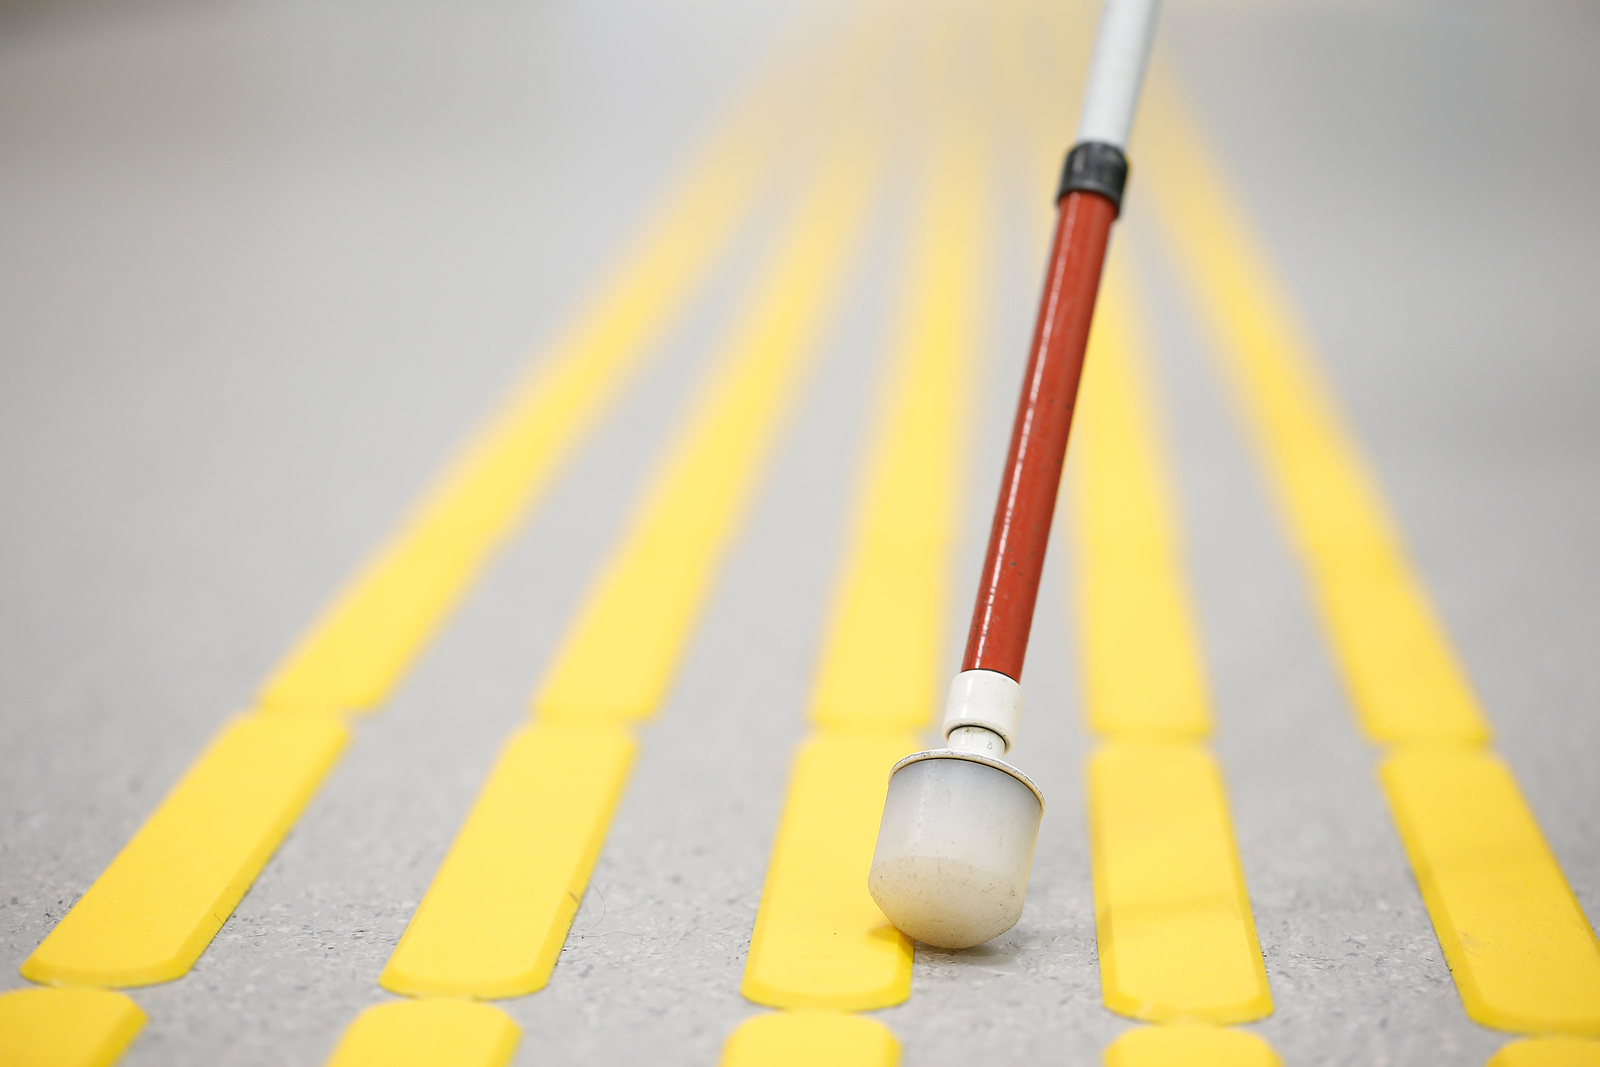 A close up of a long white cane on a street with yellow lines.